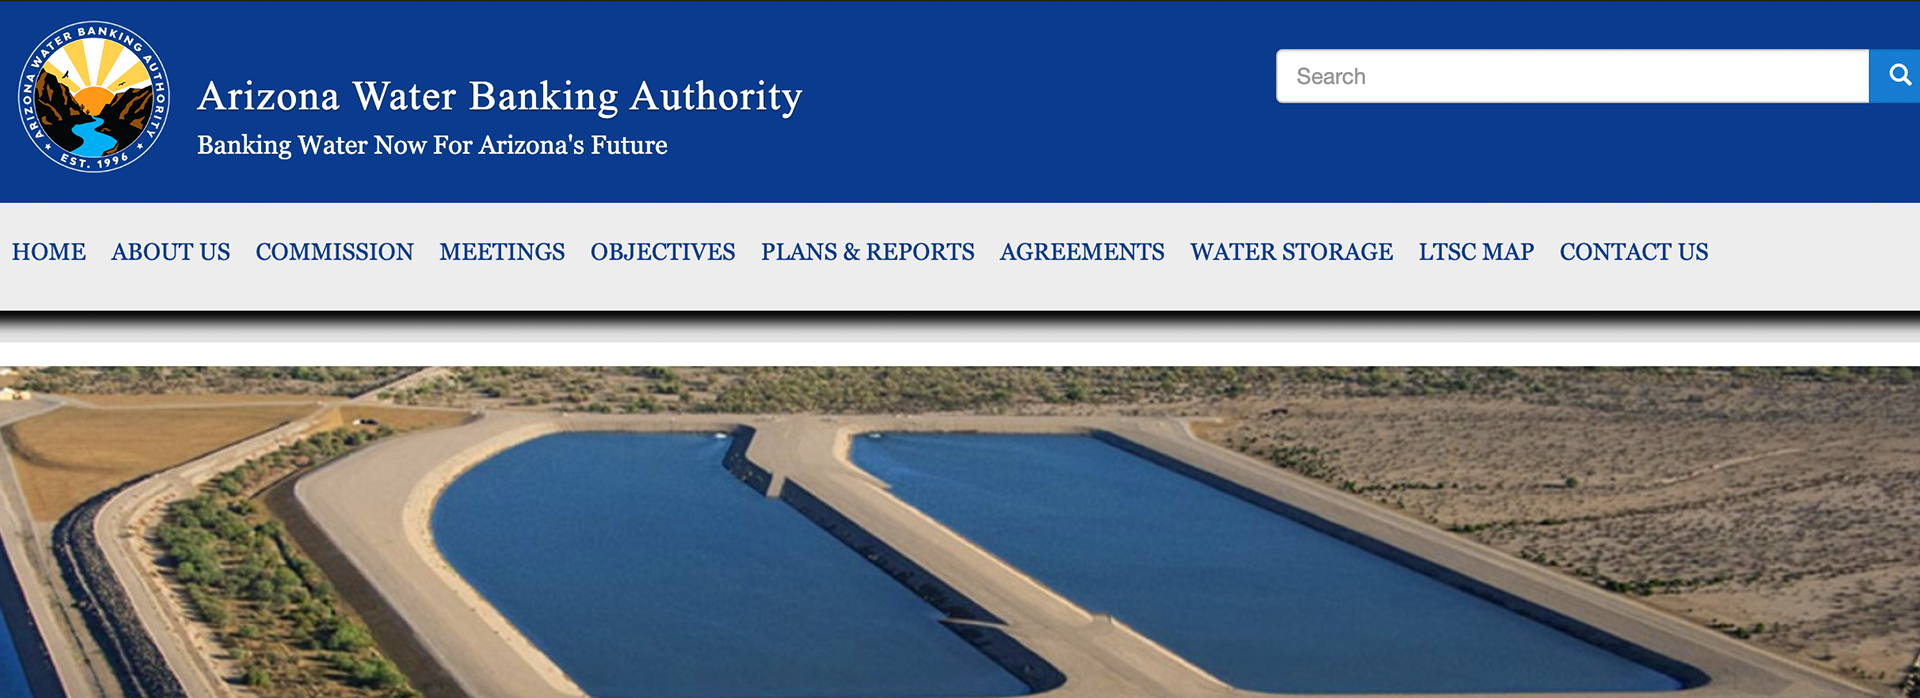 New Water Bank Website Design